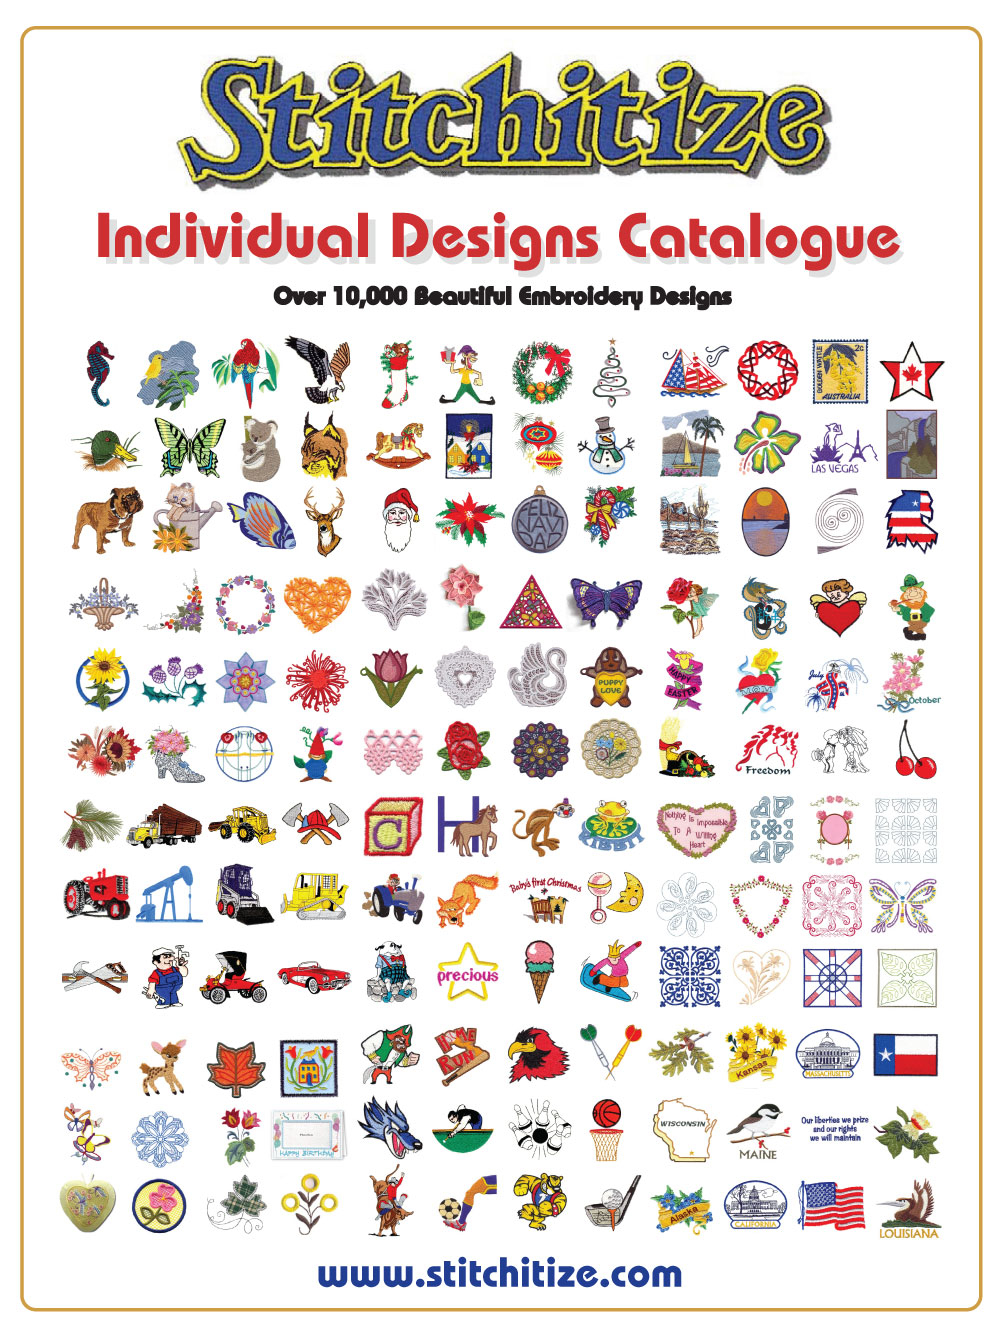 Nautical Embroidery Patterns Custom Embroidery Designs Stitchitize Printable Catalogues